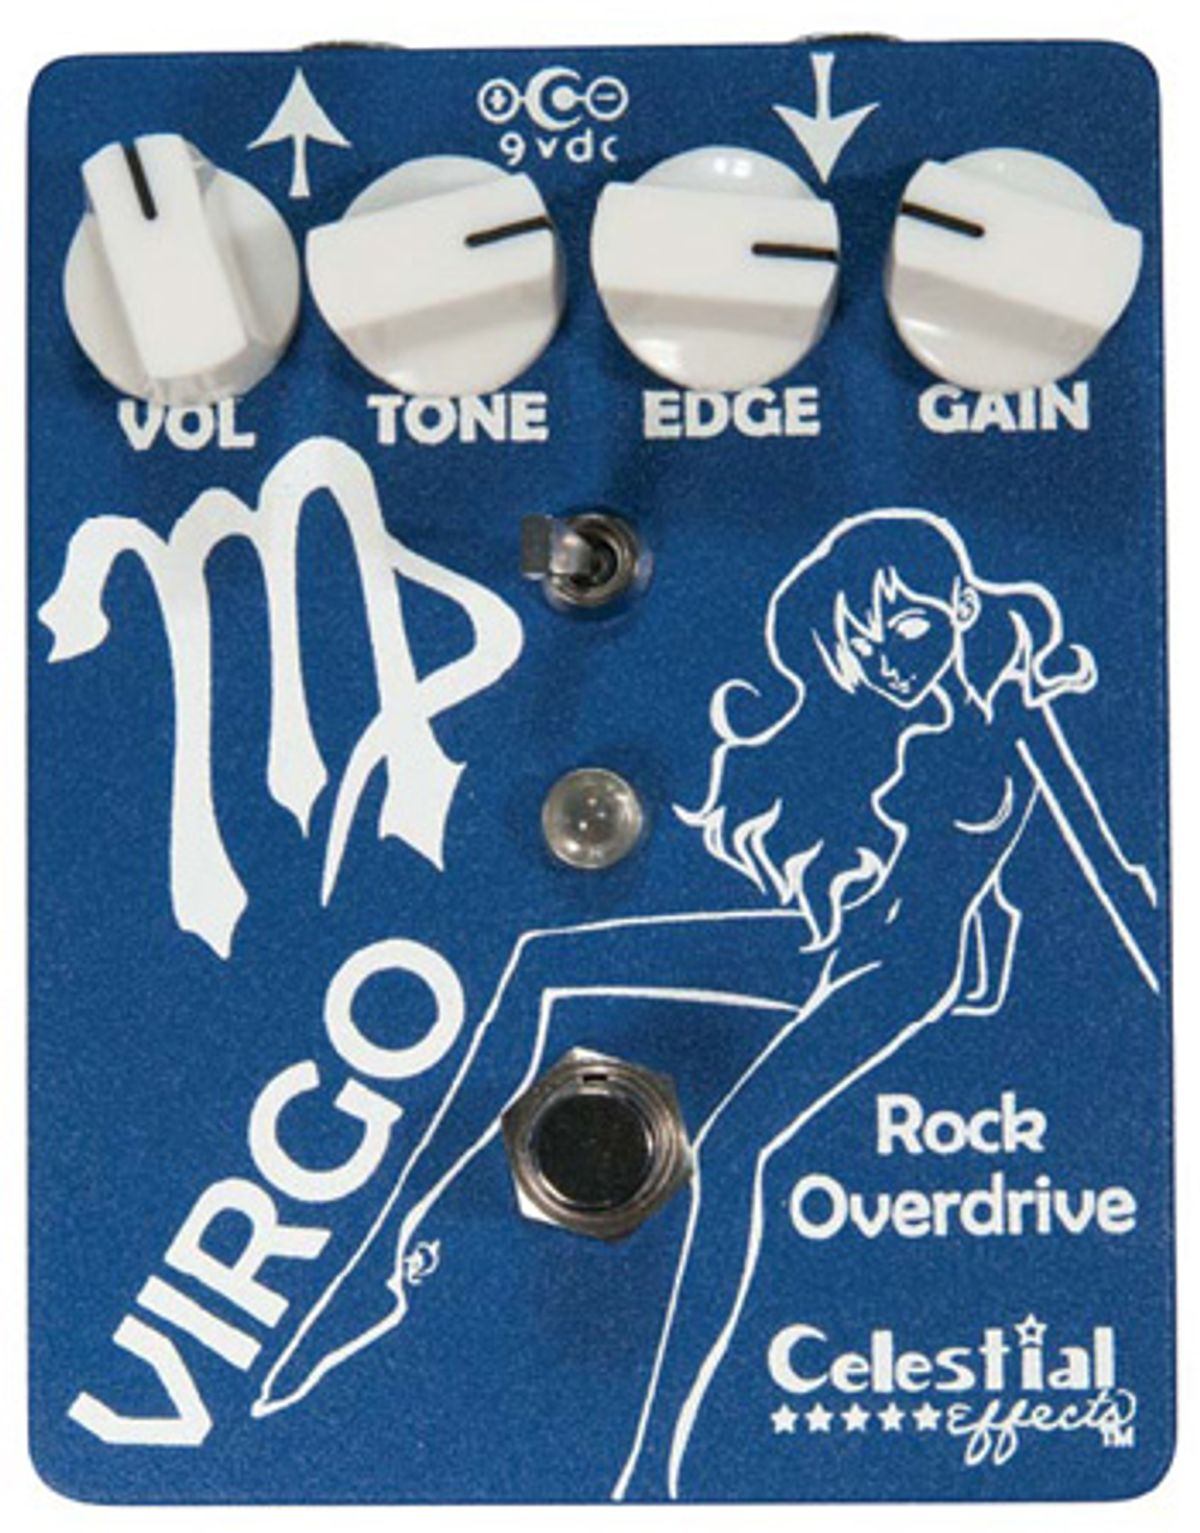 Celestial Effects Virgo Overdrive Pedal Review